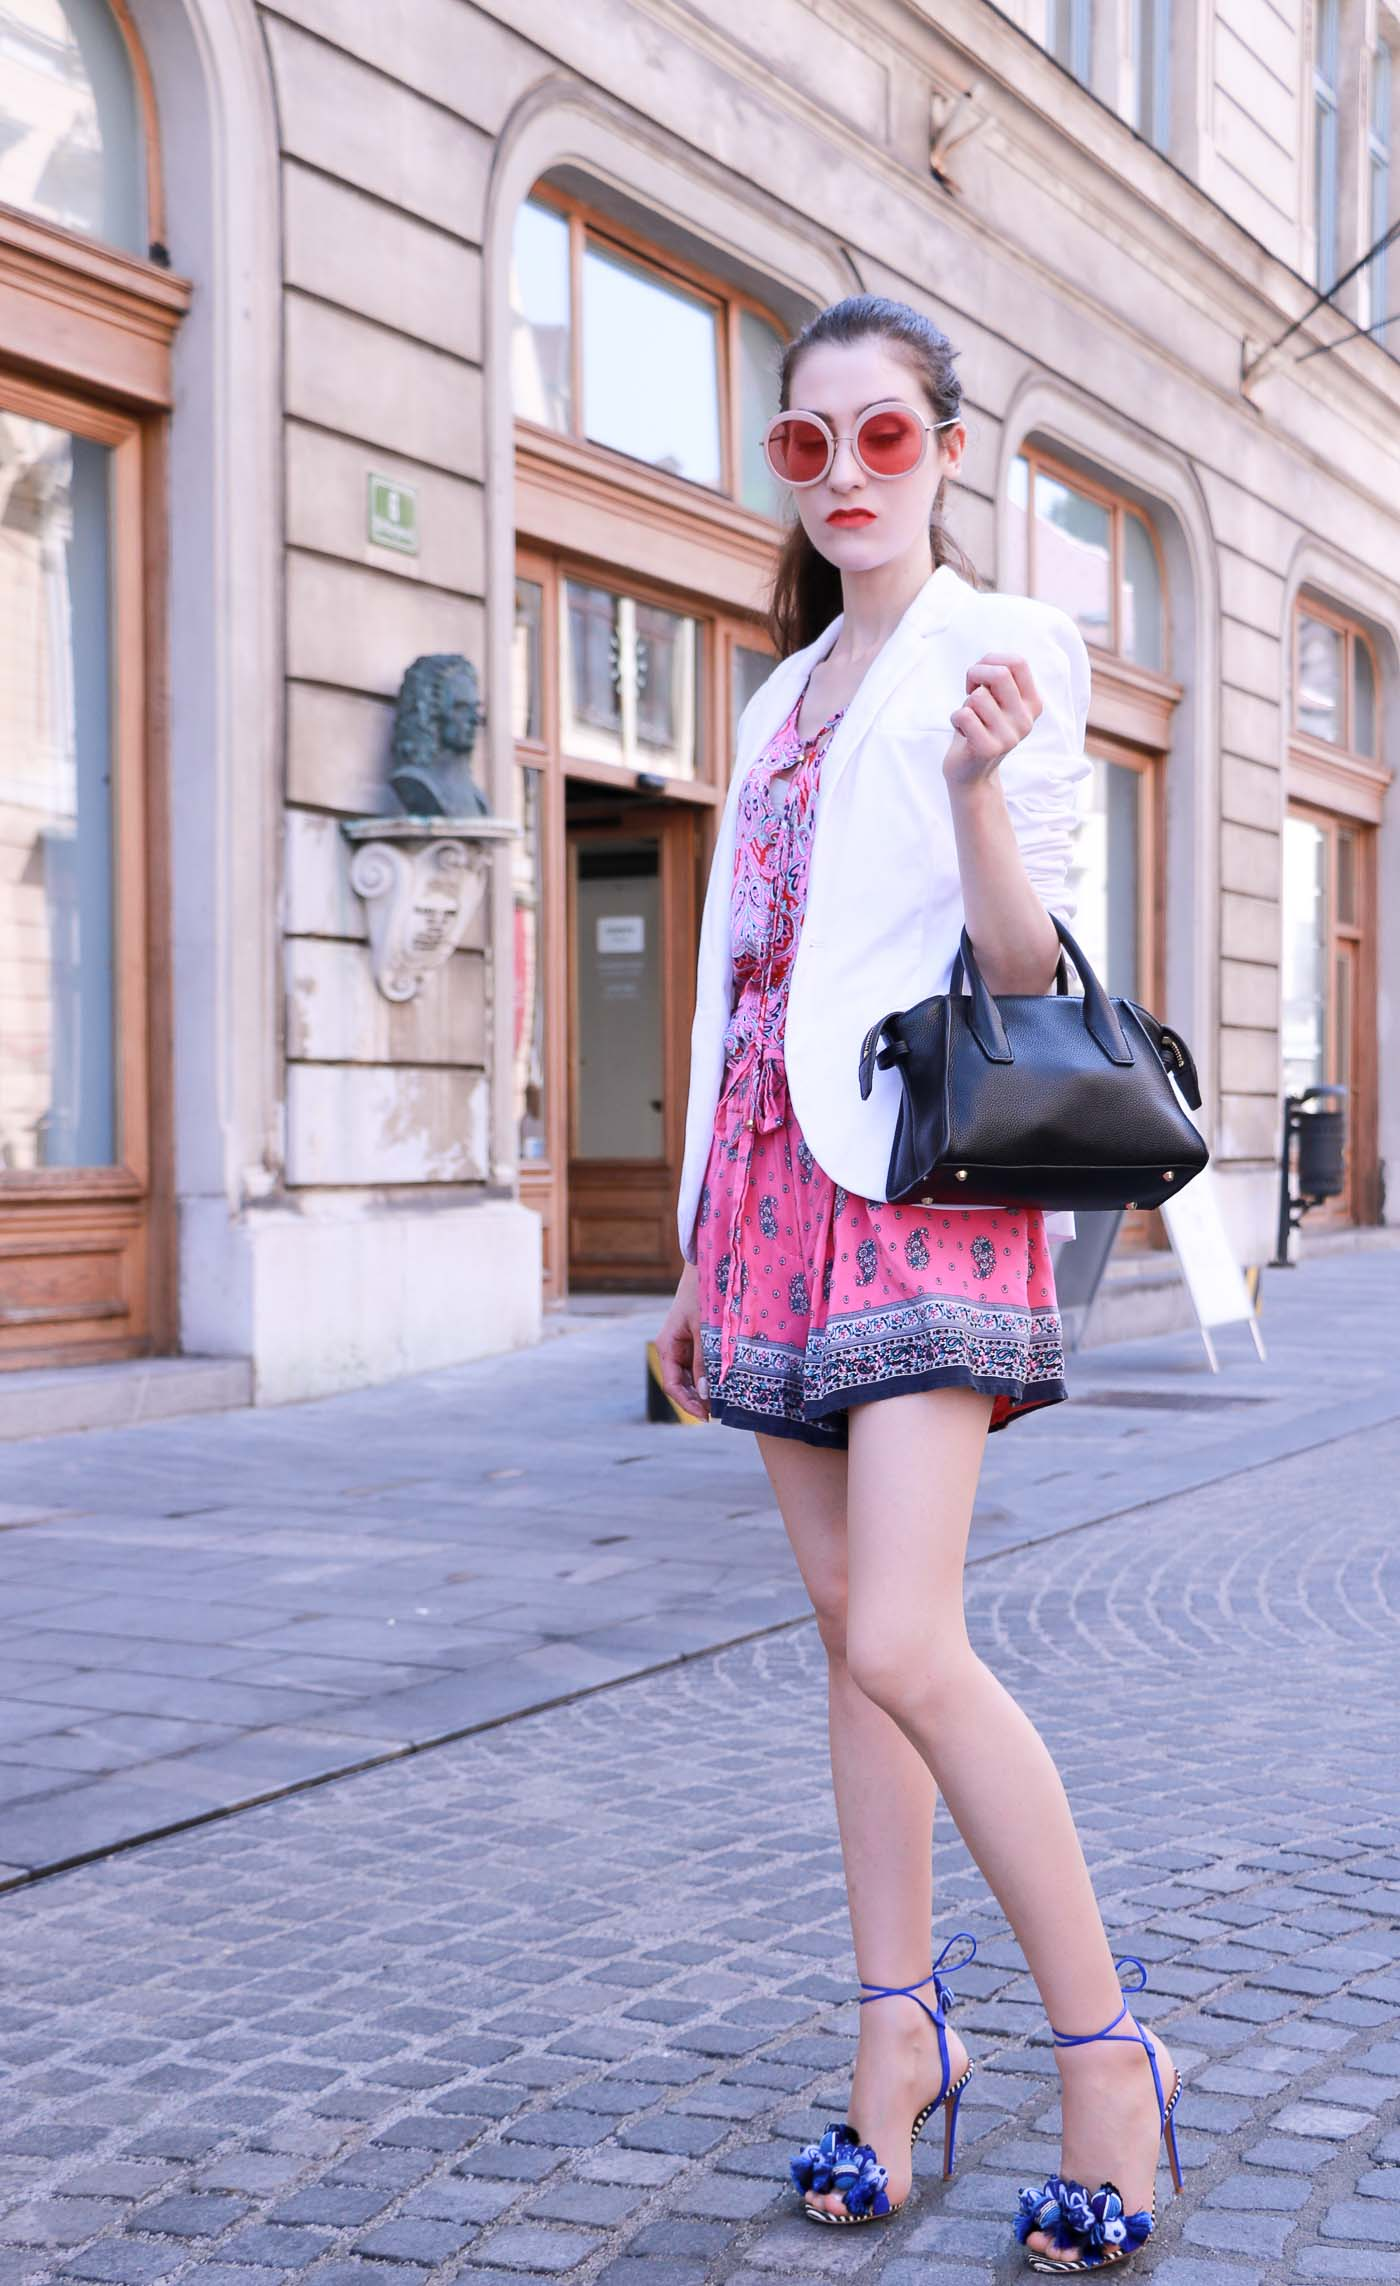 Fashion Blogger Veronika Lipar of Brunette from Wall Street wearing round pink sunglasses from Sunday Somewhere, printed pink silk shorts, printed top, white blazer, blue aquazzura sctrappy sandals, small black bag and a sleek ponytail while walking down the street in Ljubljana